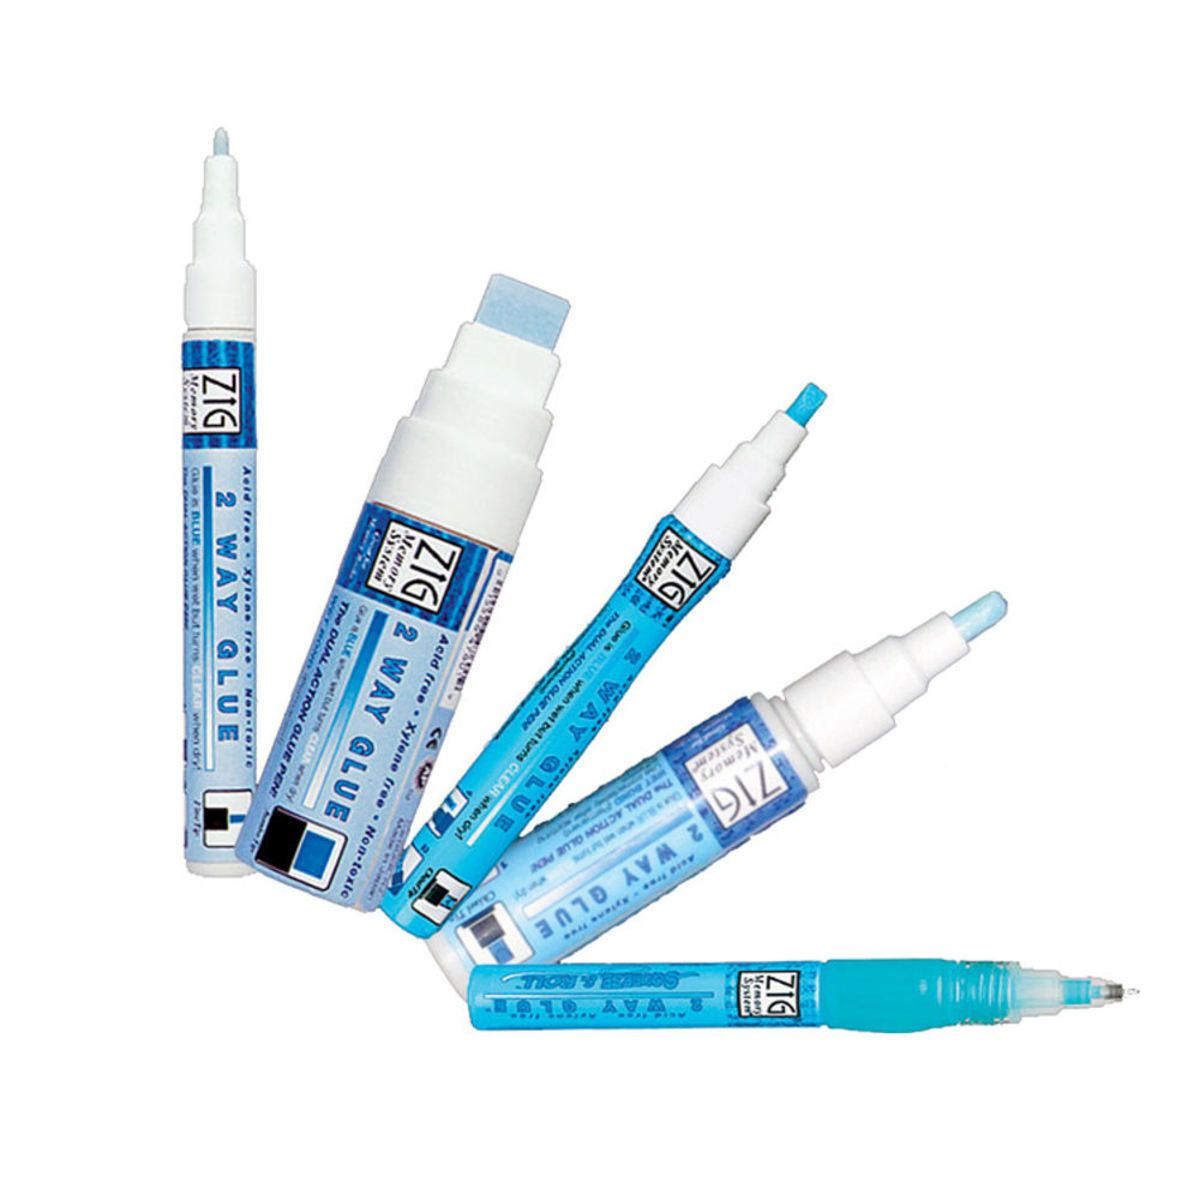 Glue pens come in different widths